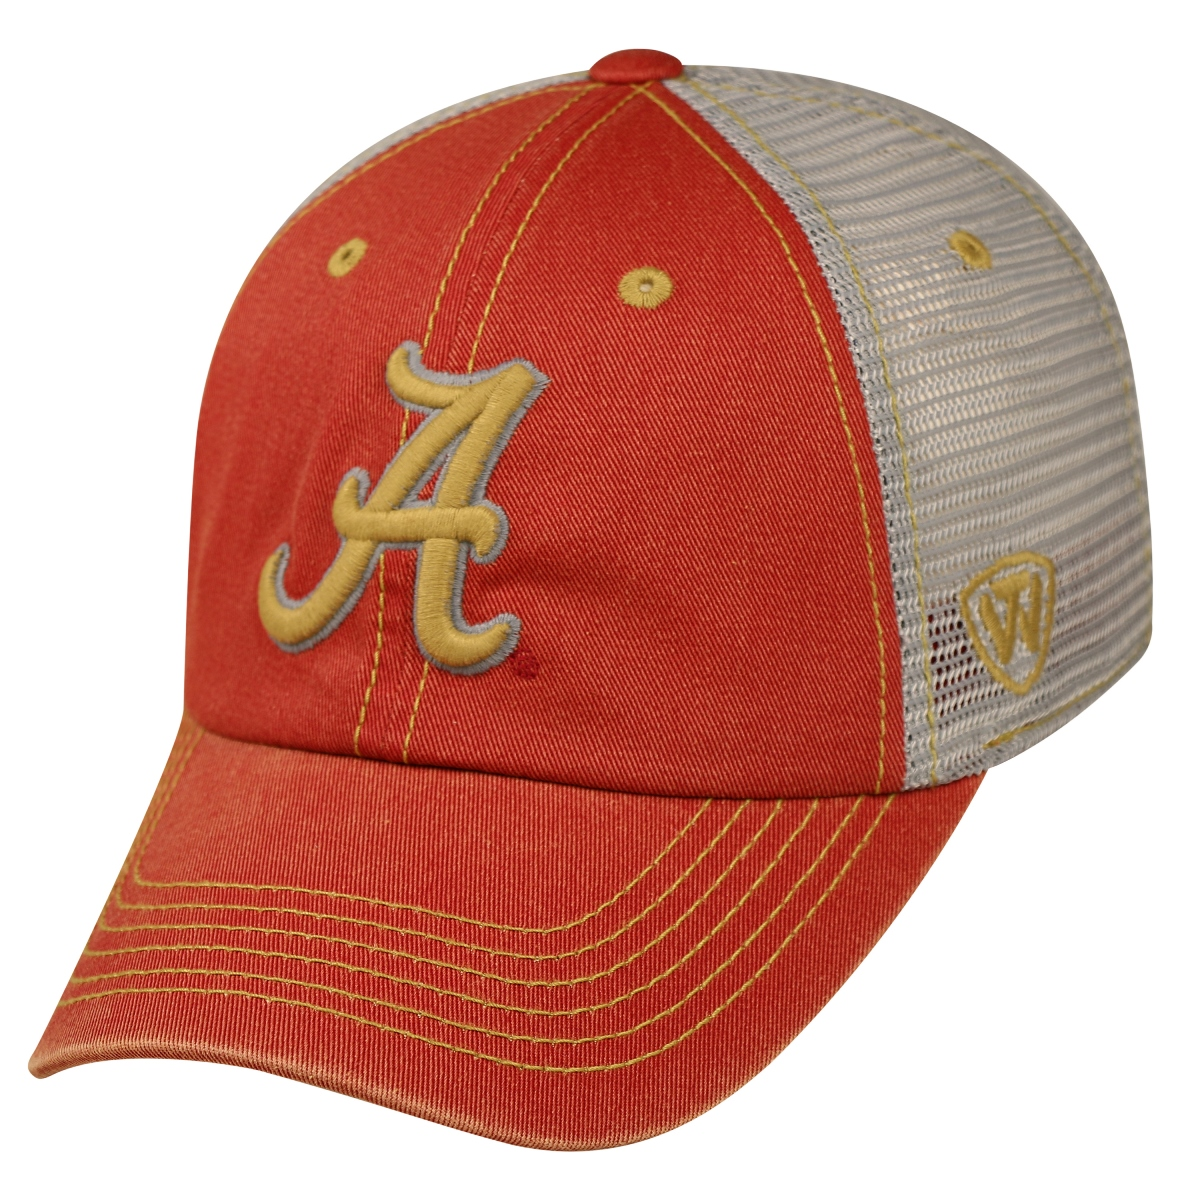 "Alabama Crimson Tide NCAA Top of the World ""Past"" Adjustable Mesh Back Hat"